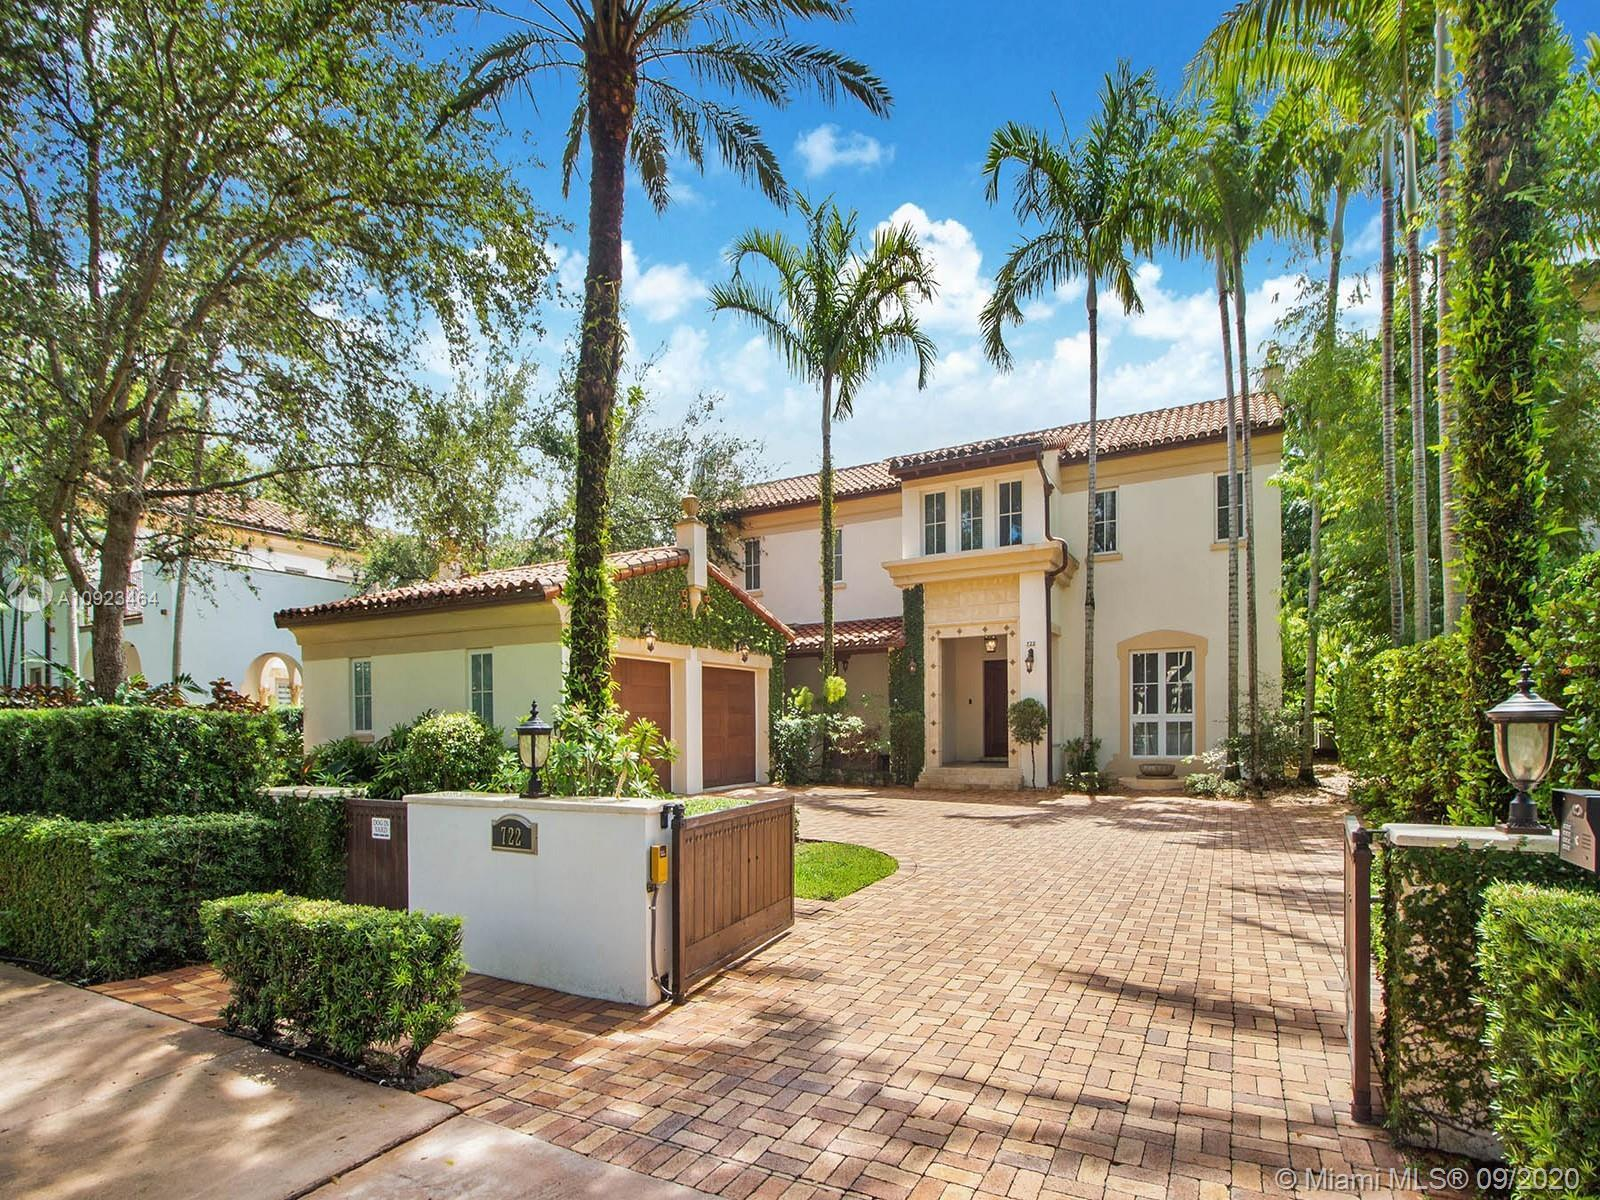 This Spanish manor in Coral Gables is utter perfection. Located in Casa Sevillanas Village surrounde